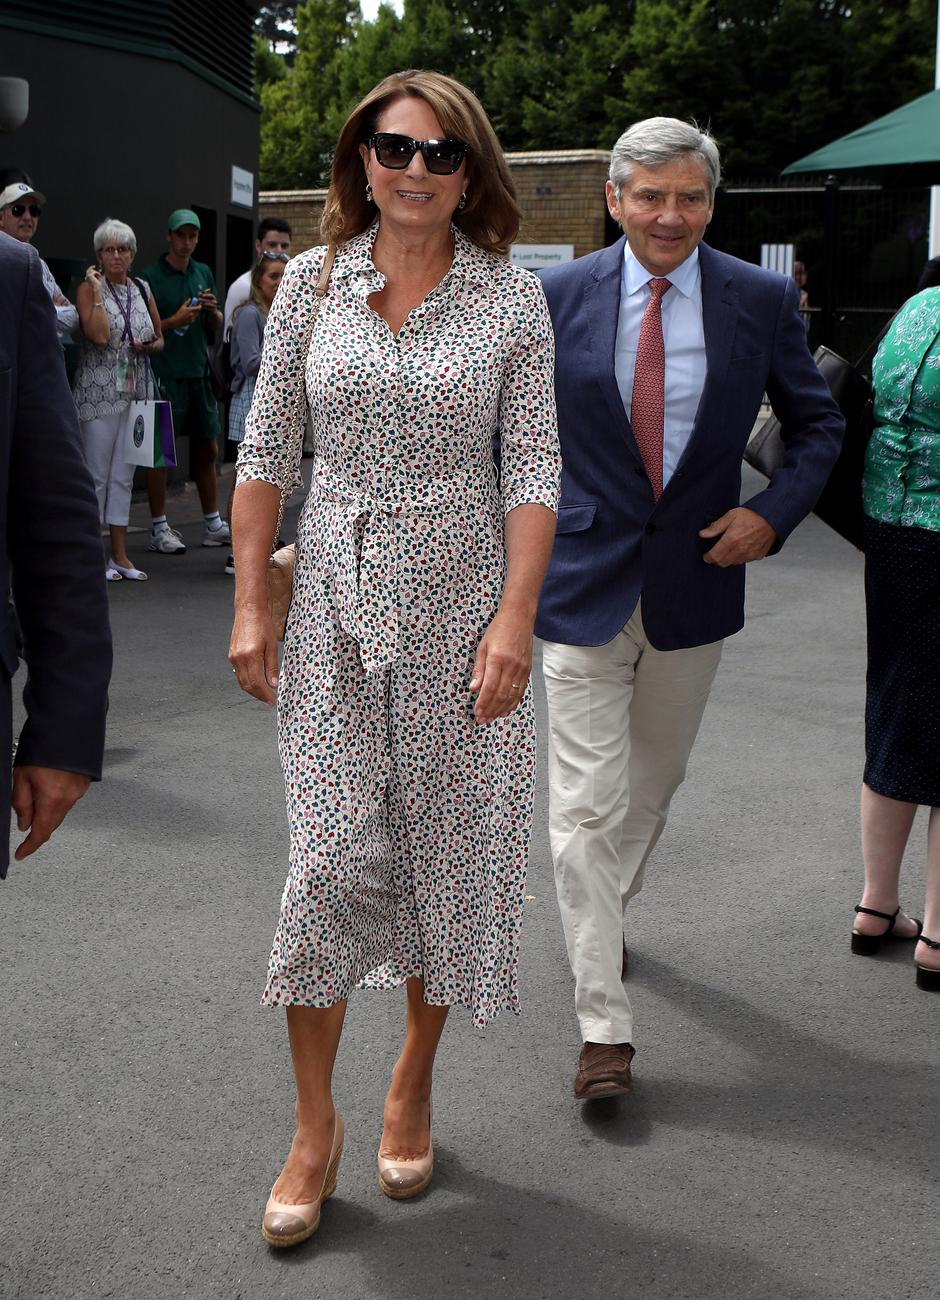 Wimbledon 2018 - Day Nine - The All England Lawn Tennis and Croquet Club | Autor: Philip Toscano/Press Association/PIXSELL